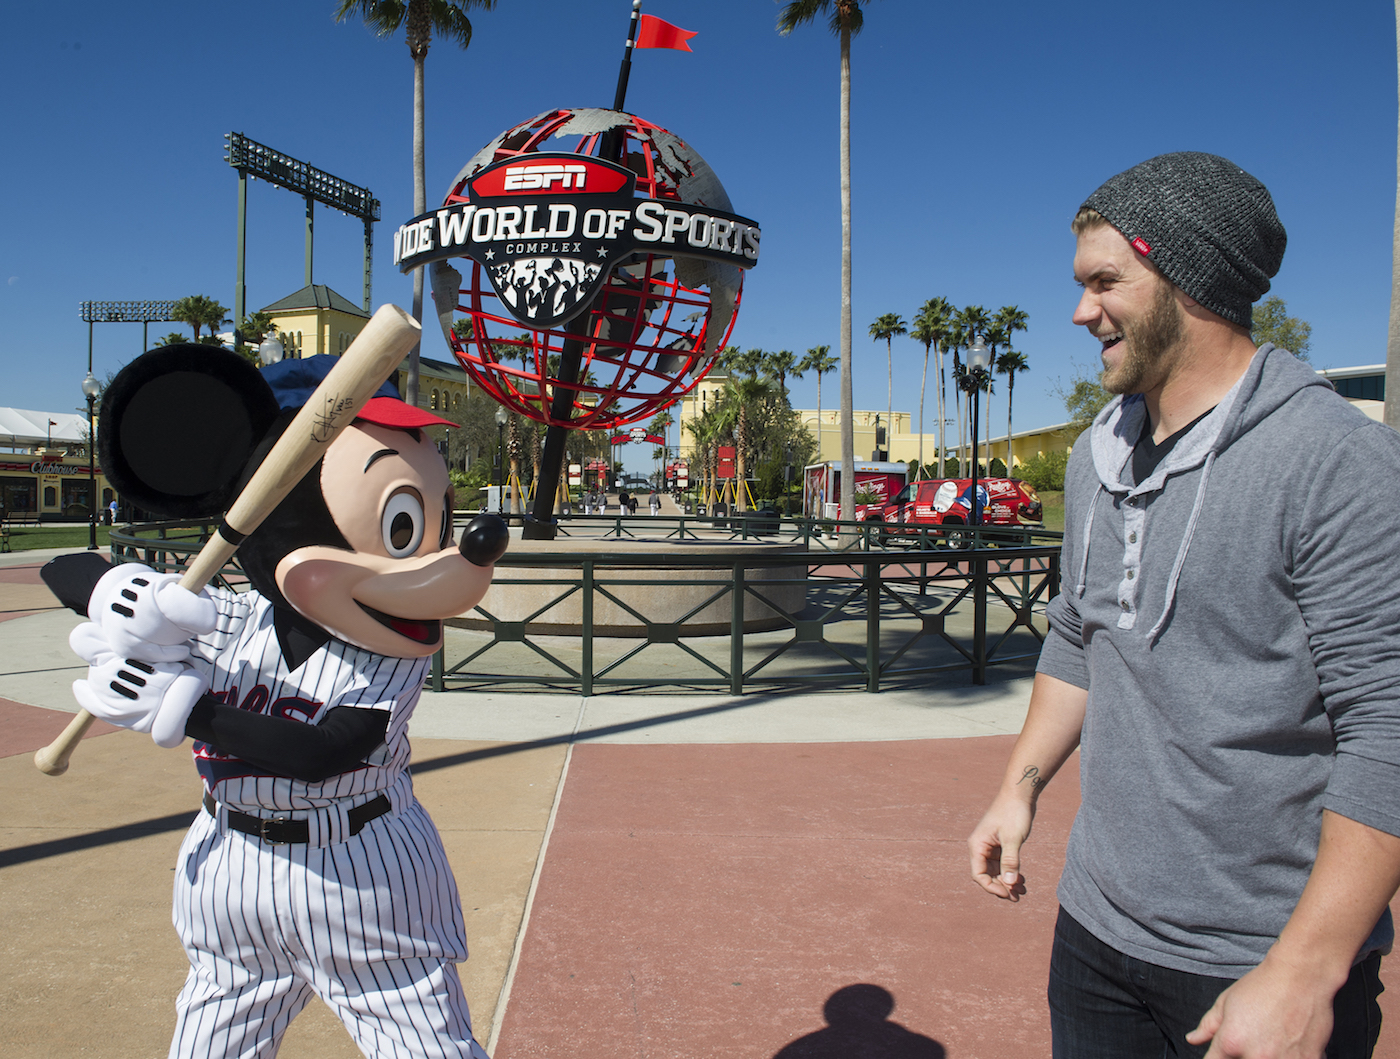 (MARCH 4, 2013):  Reigning National League Rookie of the Year Bryce Harper of the Washington Nationals poses March 4, 2013 with Mickey Mouse at ESPN Wide World of Sports Complex at Walt Disney World in Lake Buena Vista, Fla.  Harper also was named to the 2012 NL All-Star Team.  The Washington Nationals are hosting their MLB Spring Training in nearby Viera, Fla. (Gene Duncan, photographer)